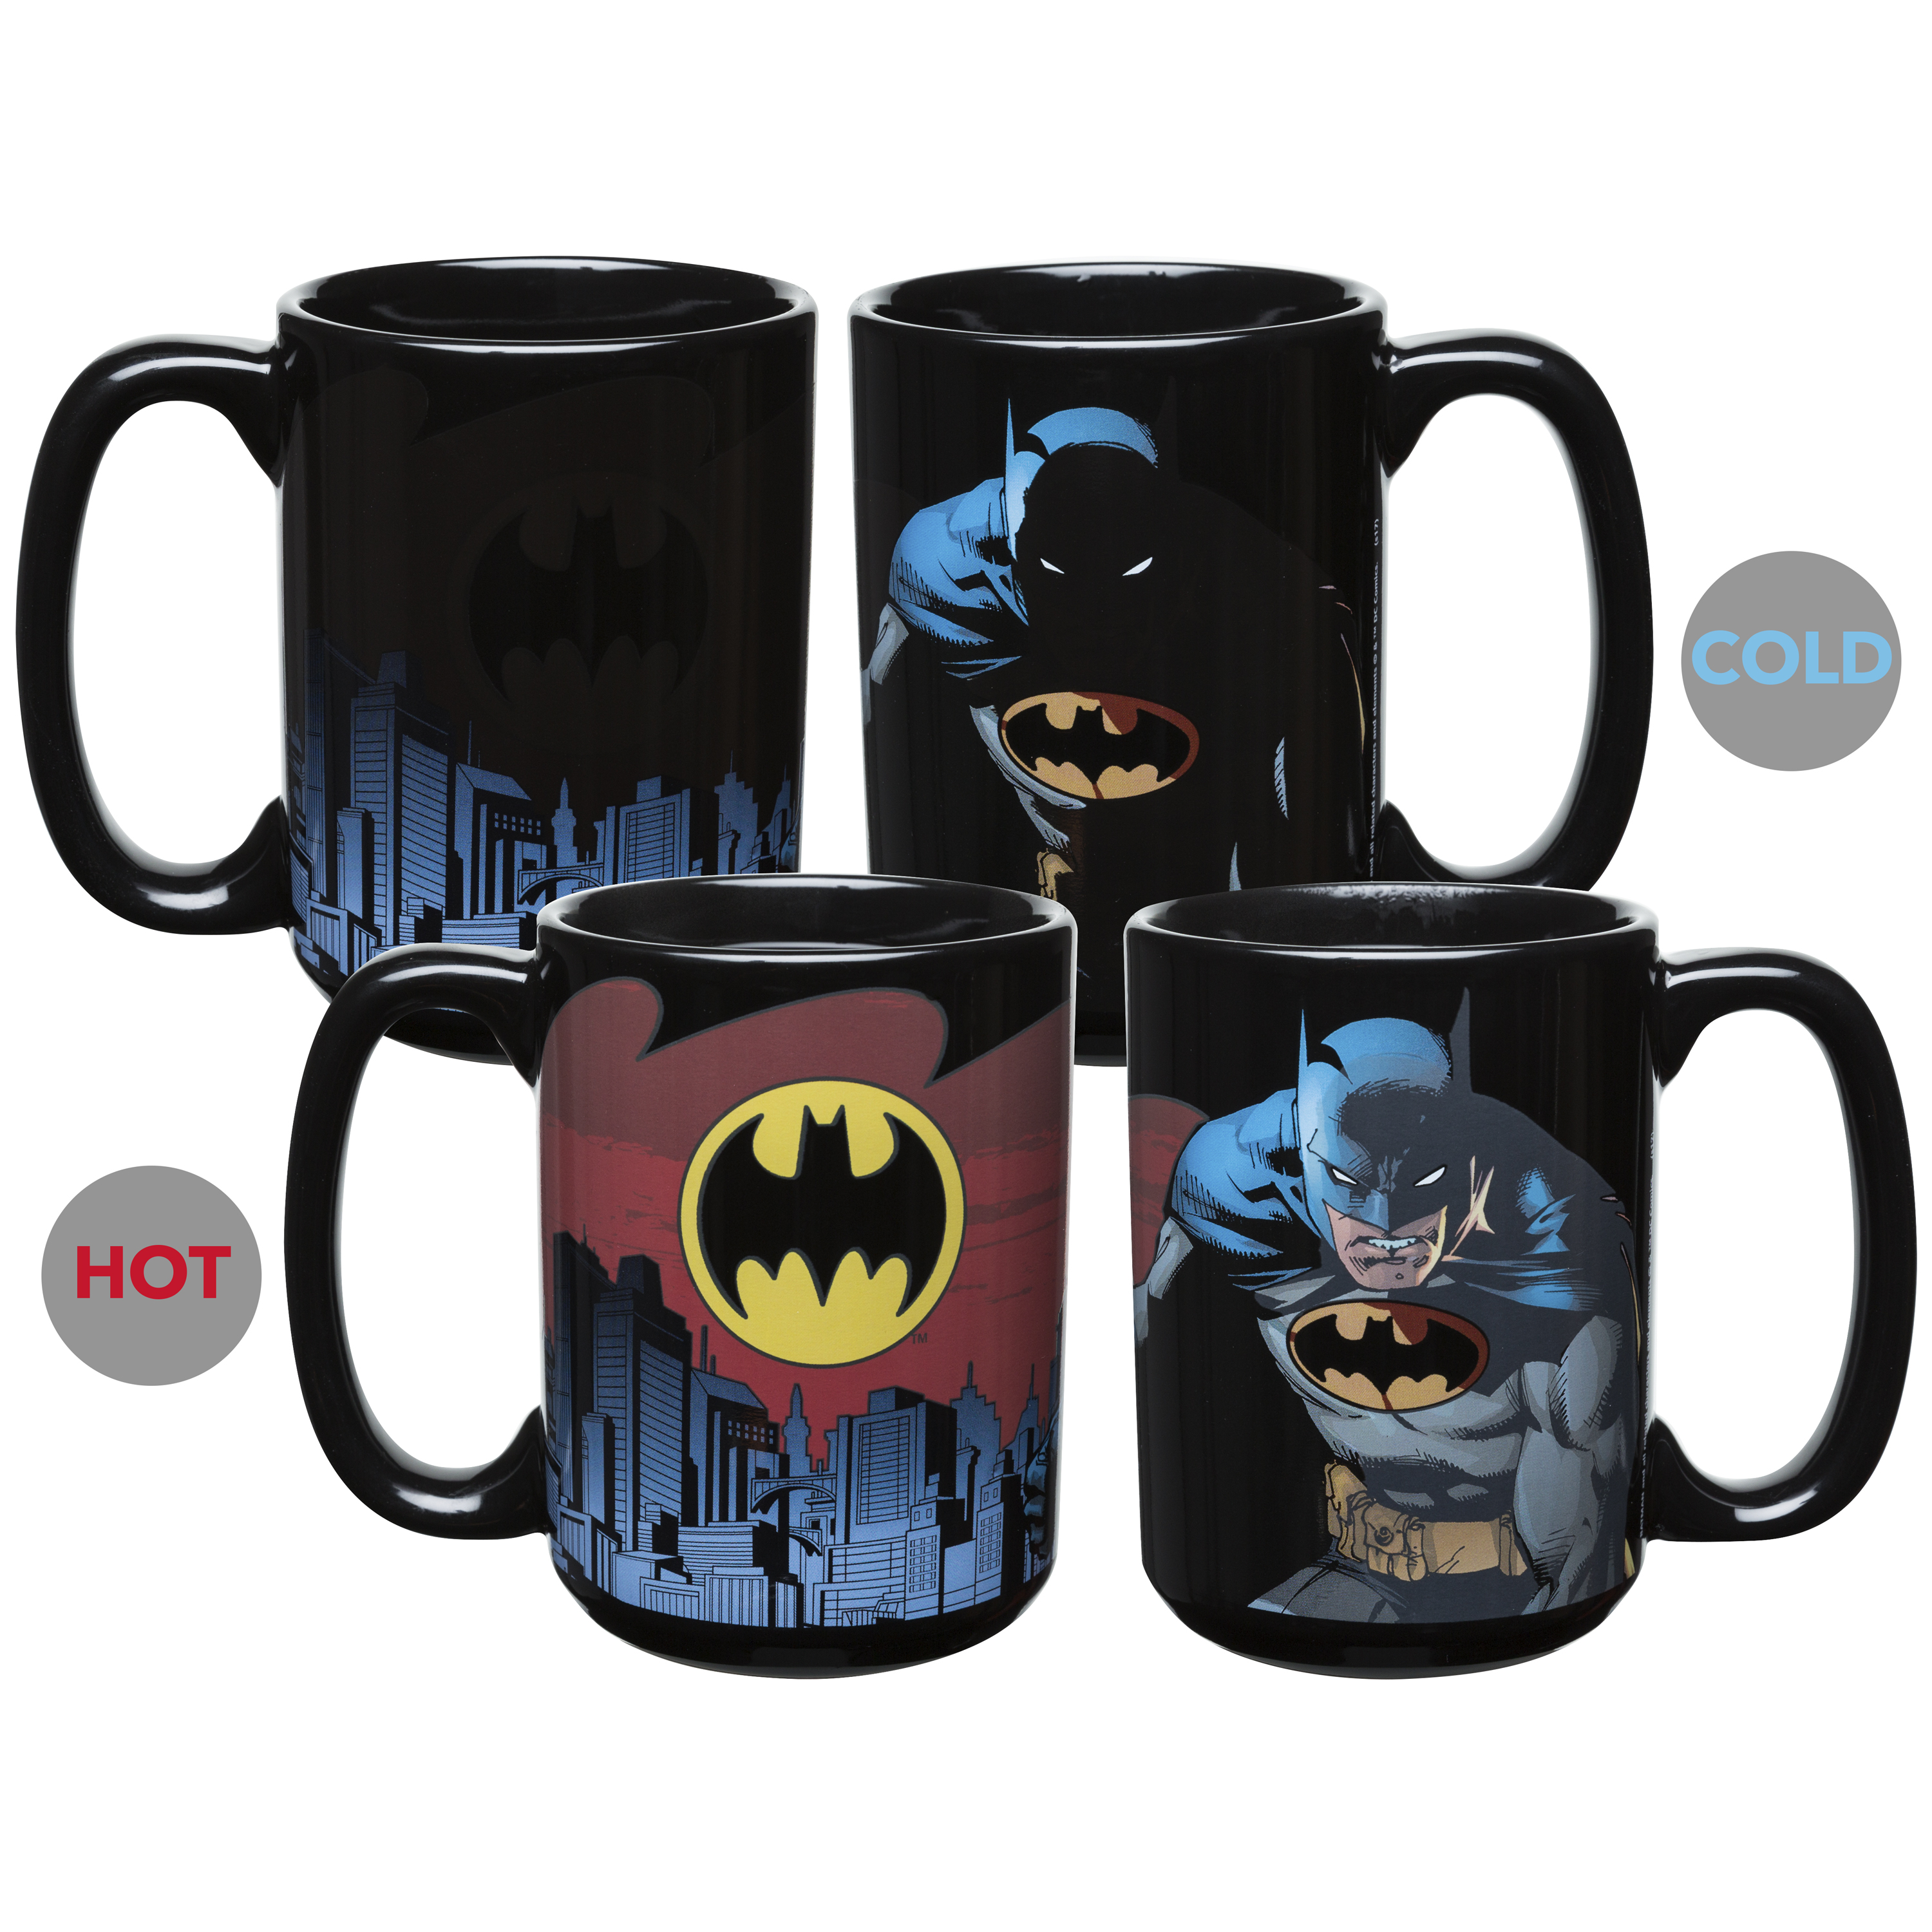 DC Comics 15 oz. Coffee Mug, Batman slideshow image 2